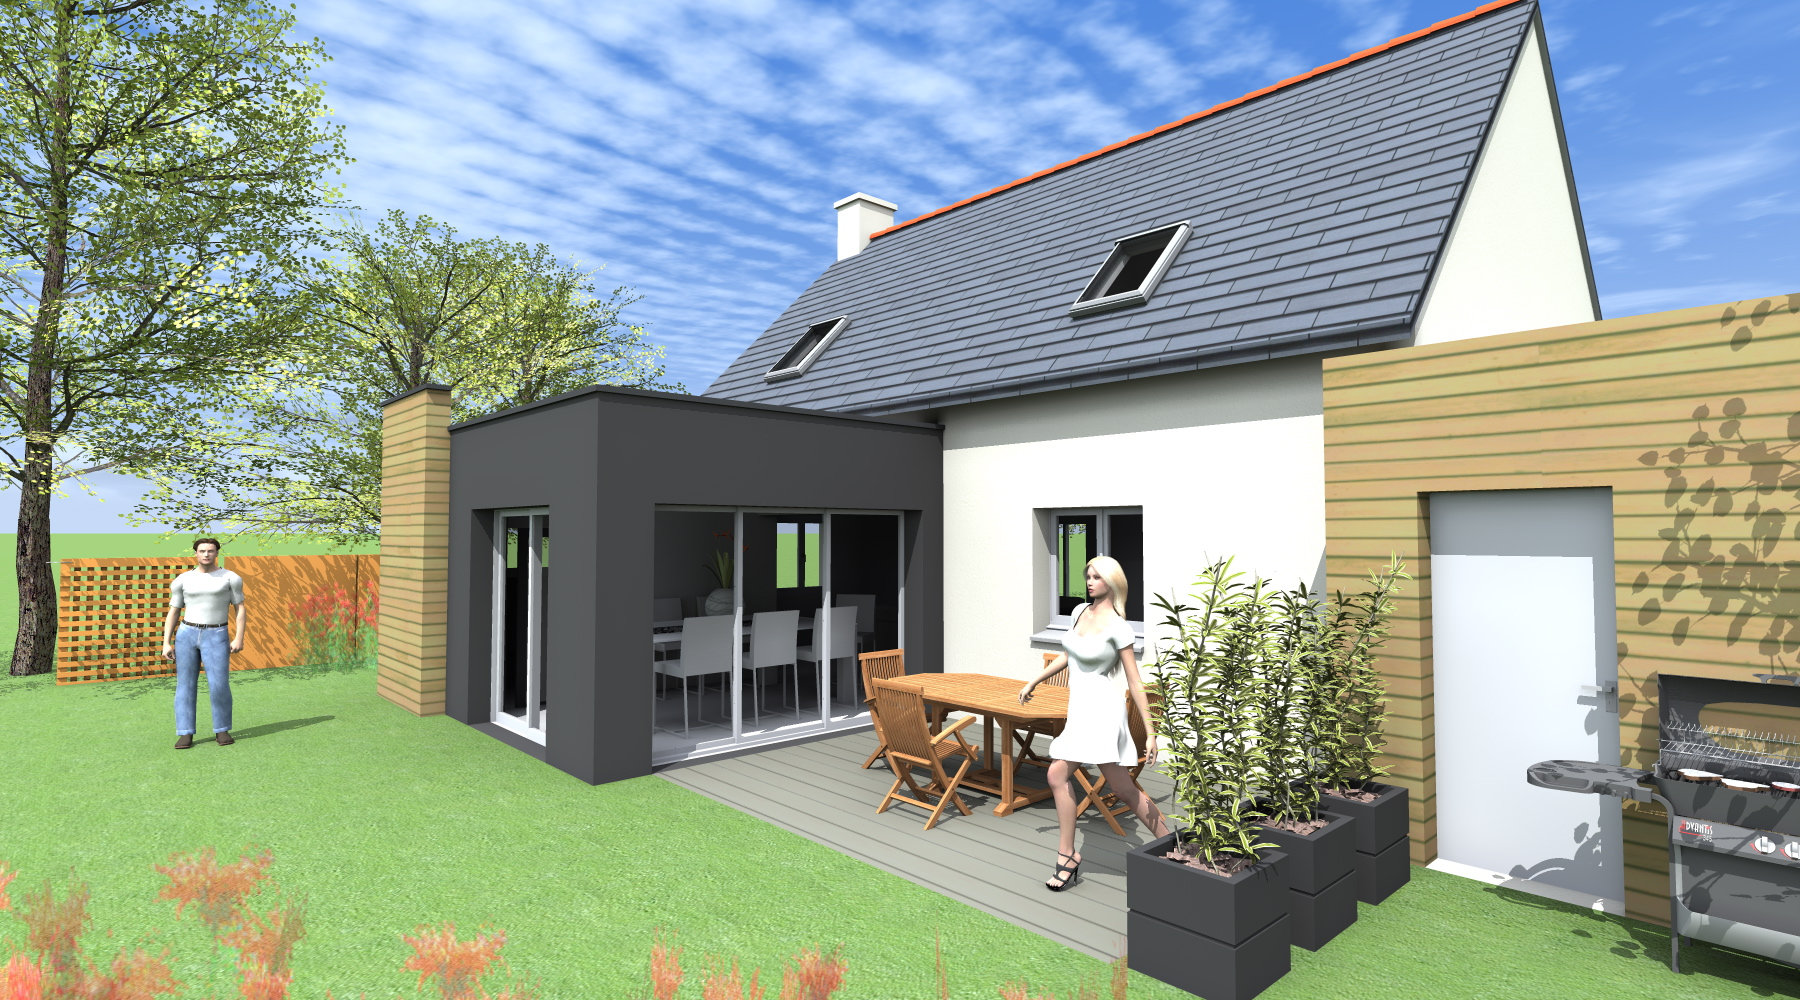 Projet ld ld 1 2 vue architecte lise roturier for Extension de maison rennes